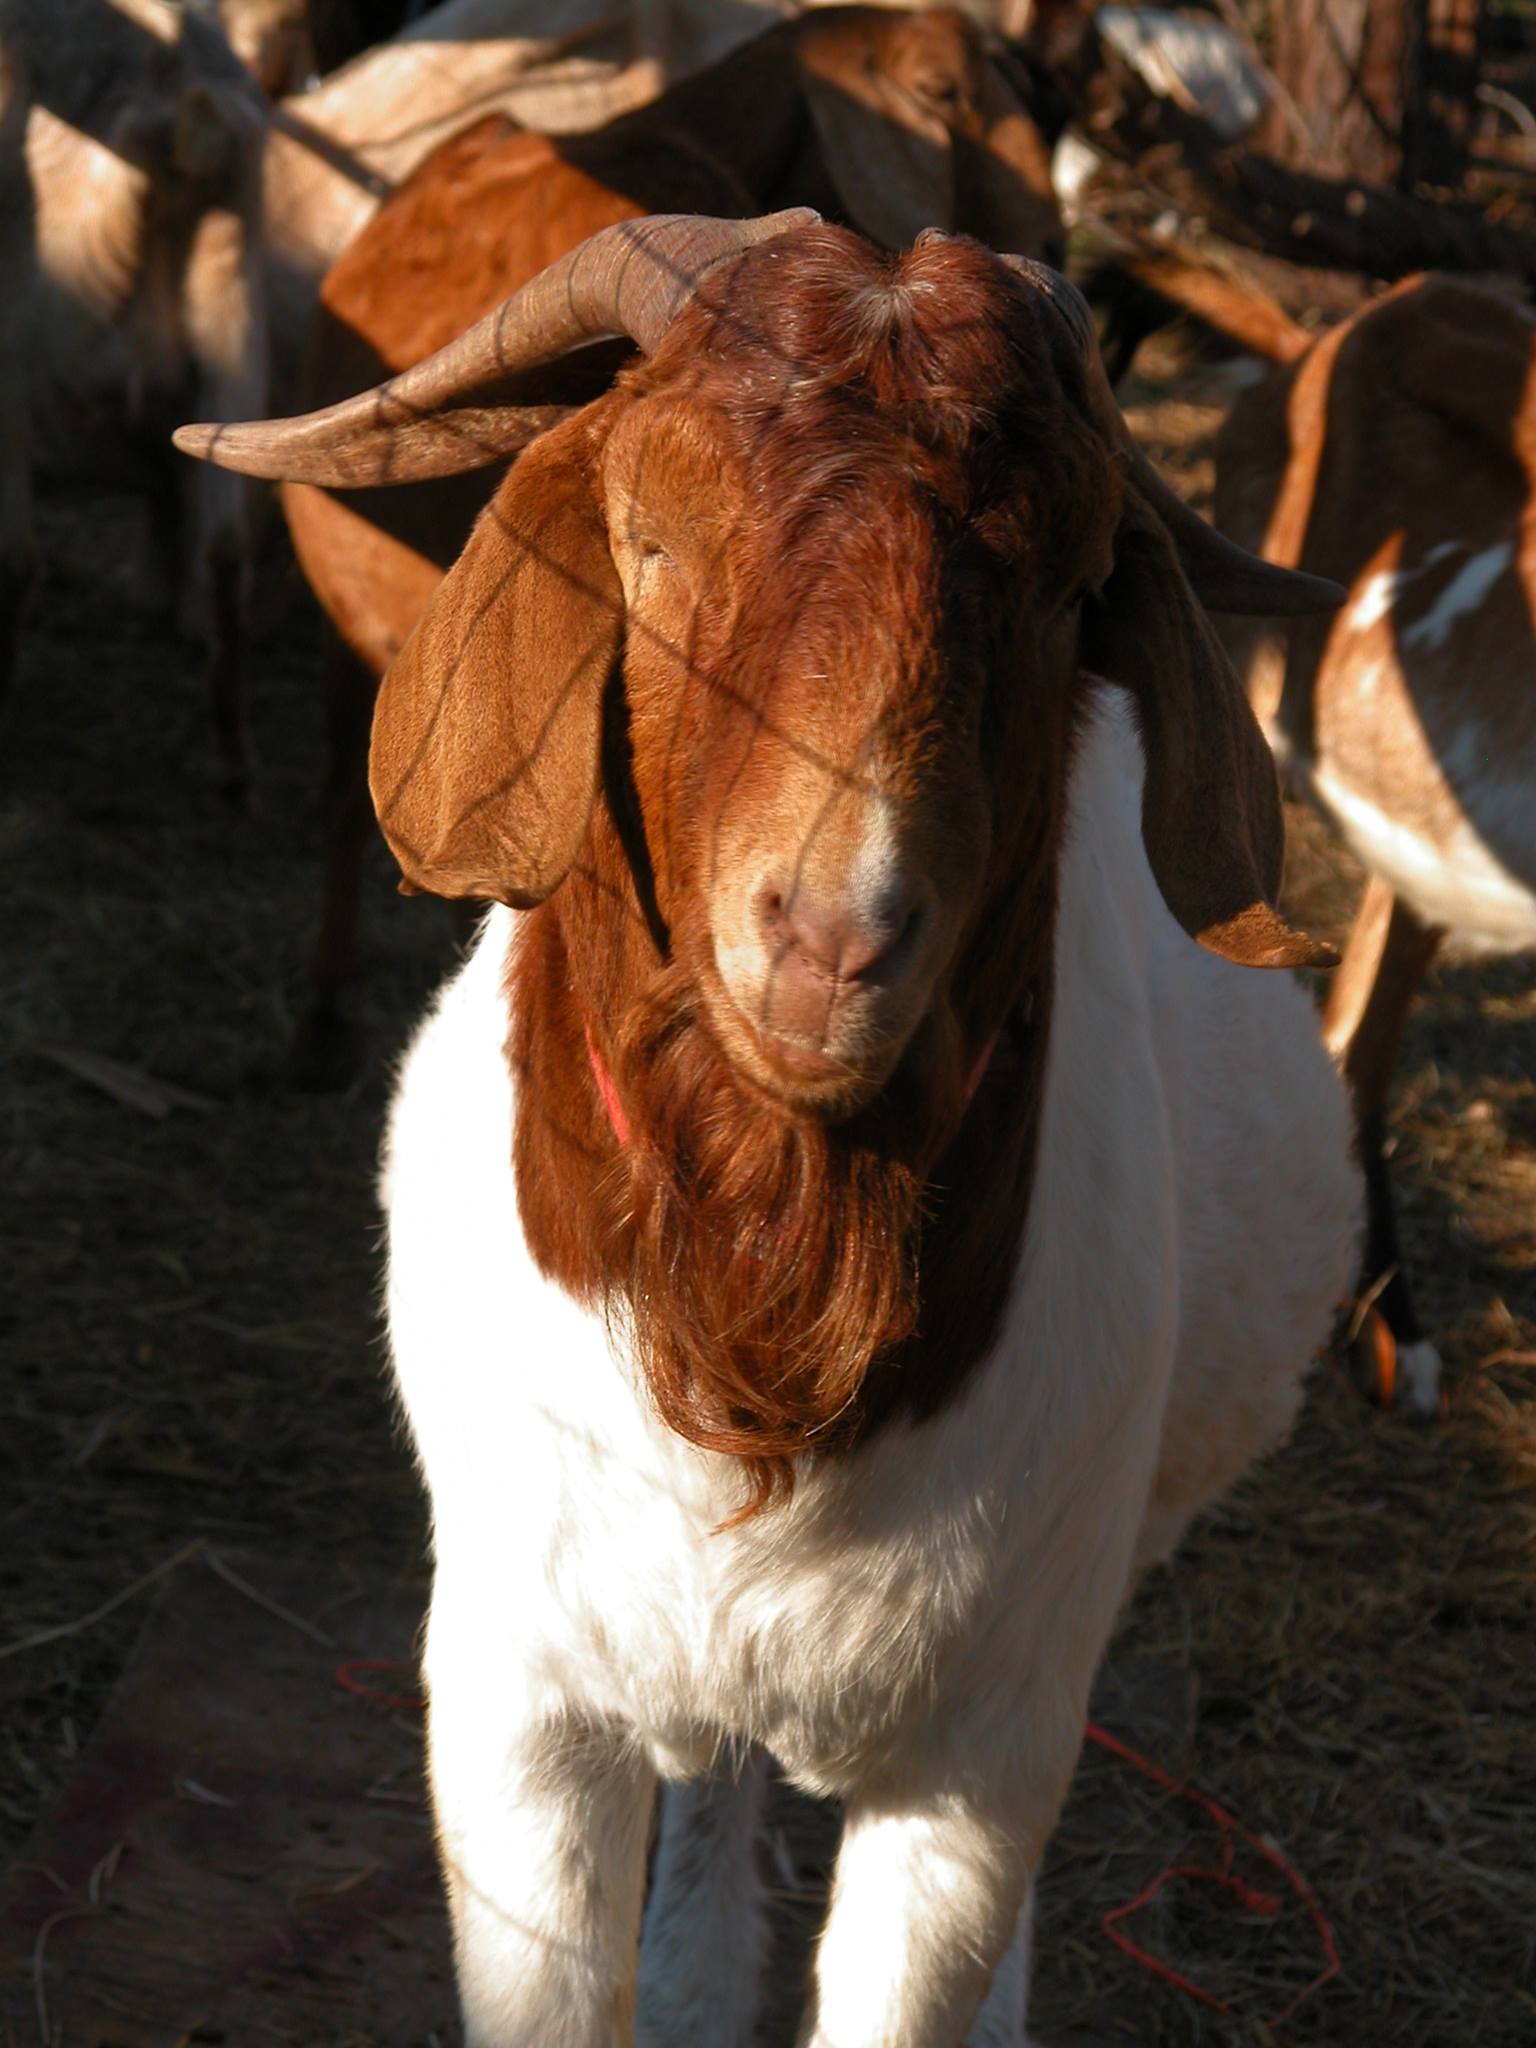 Goats By Breed - Boer - GOATWORLD.COM